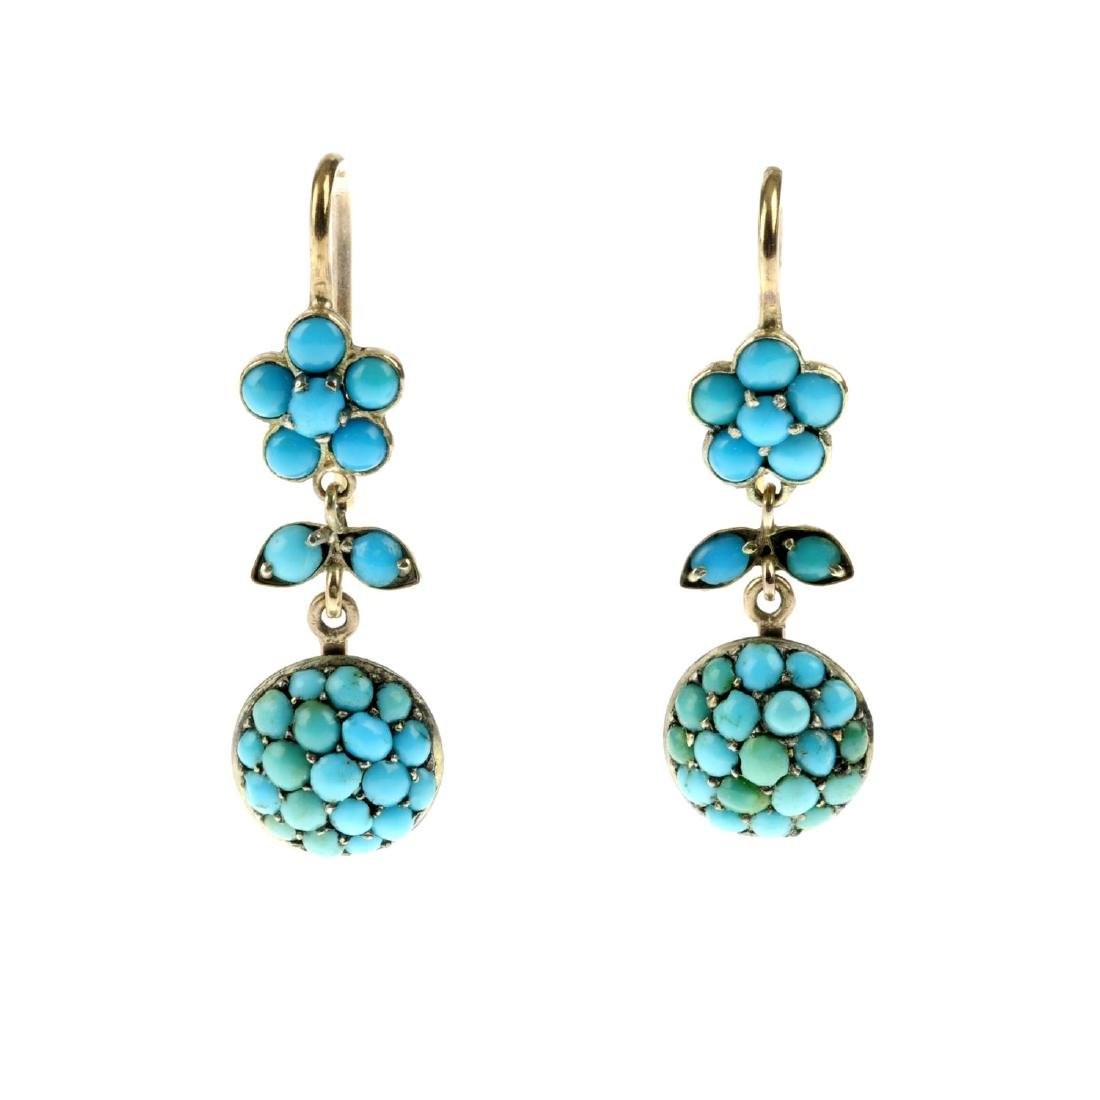 A pair of late Victorian turquoise earrings. Designed